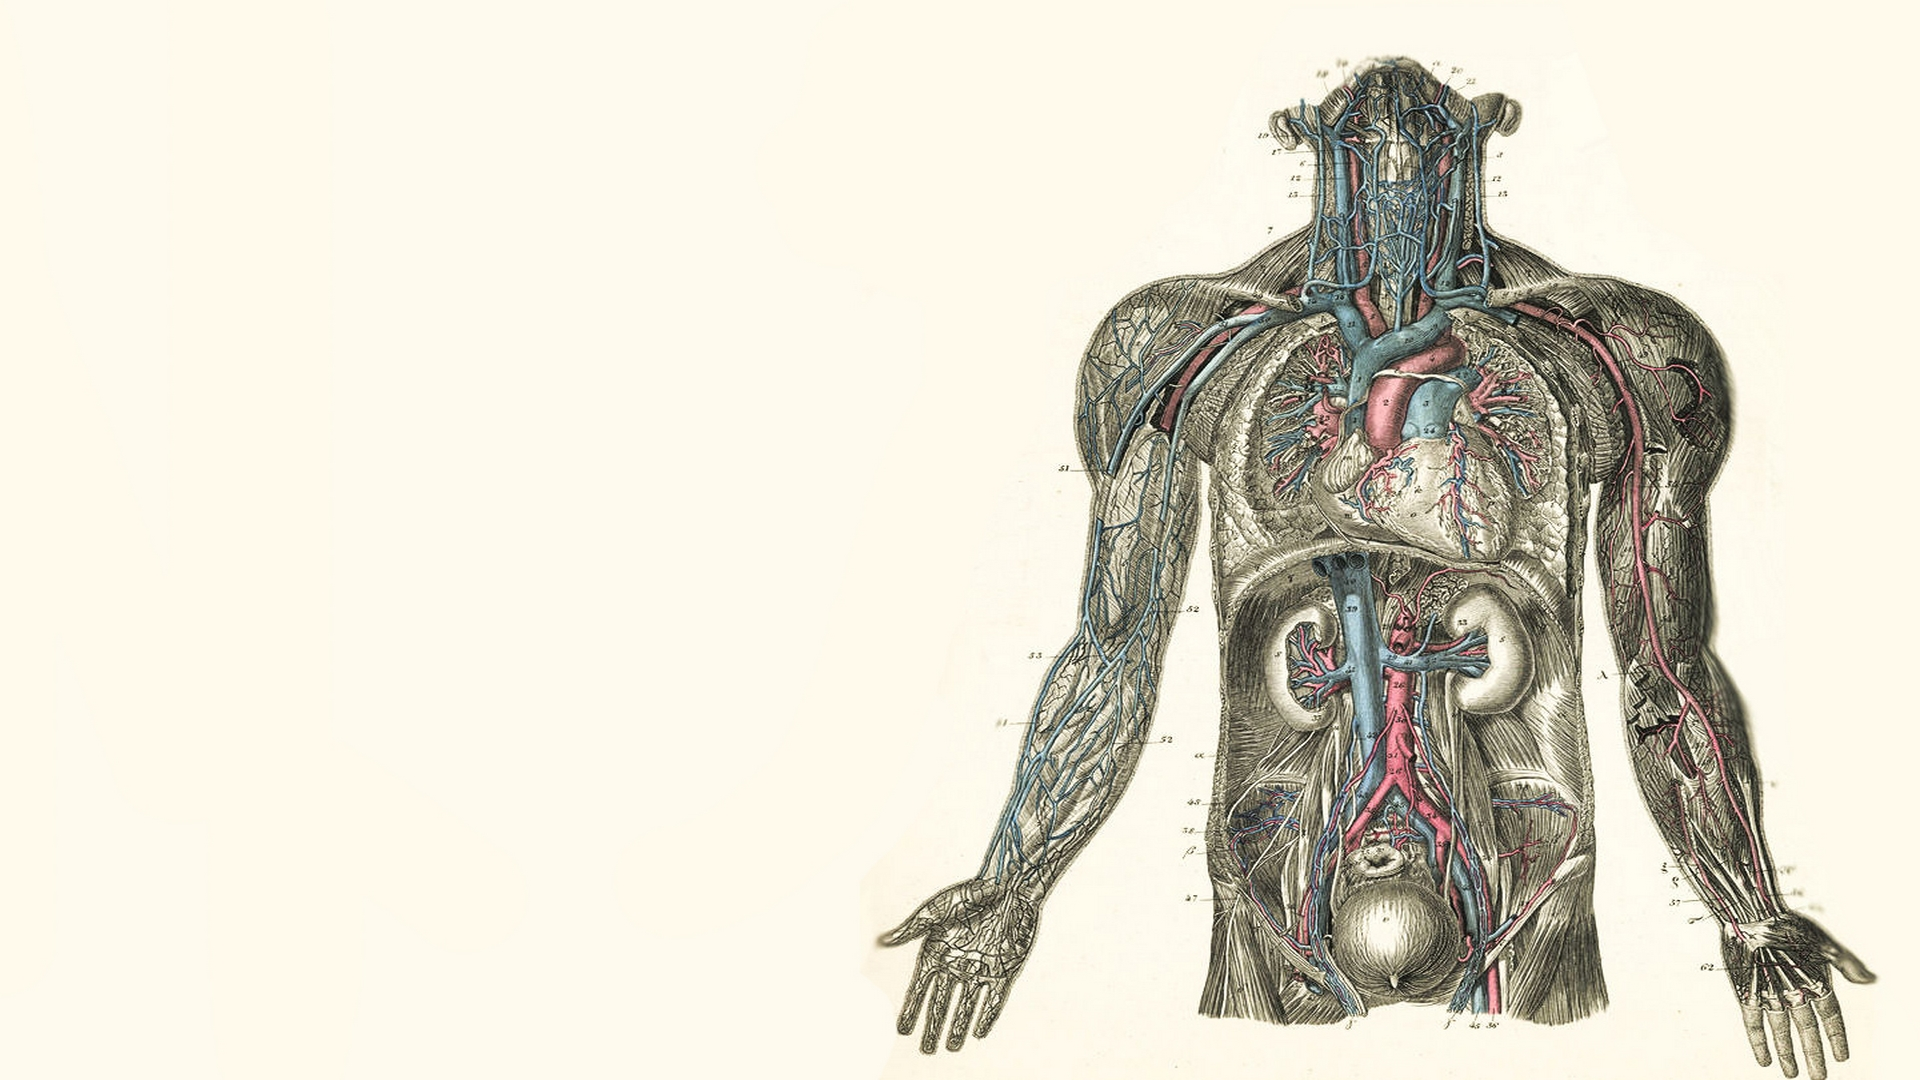 Anatomy-Computer-Desktop-Backgrounds-1920x1080-ID-wallpaper-wpc9202385